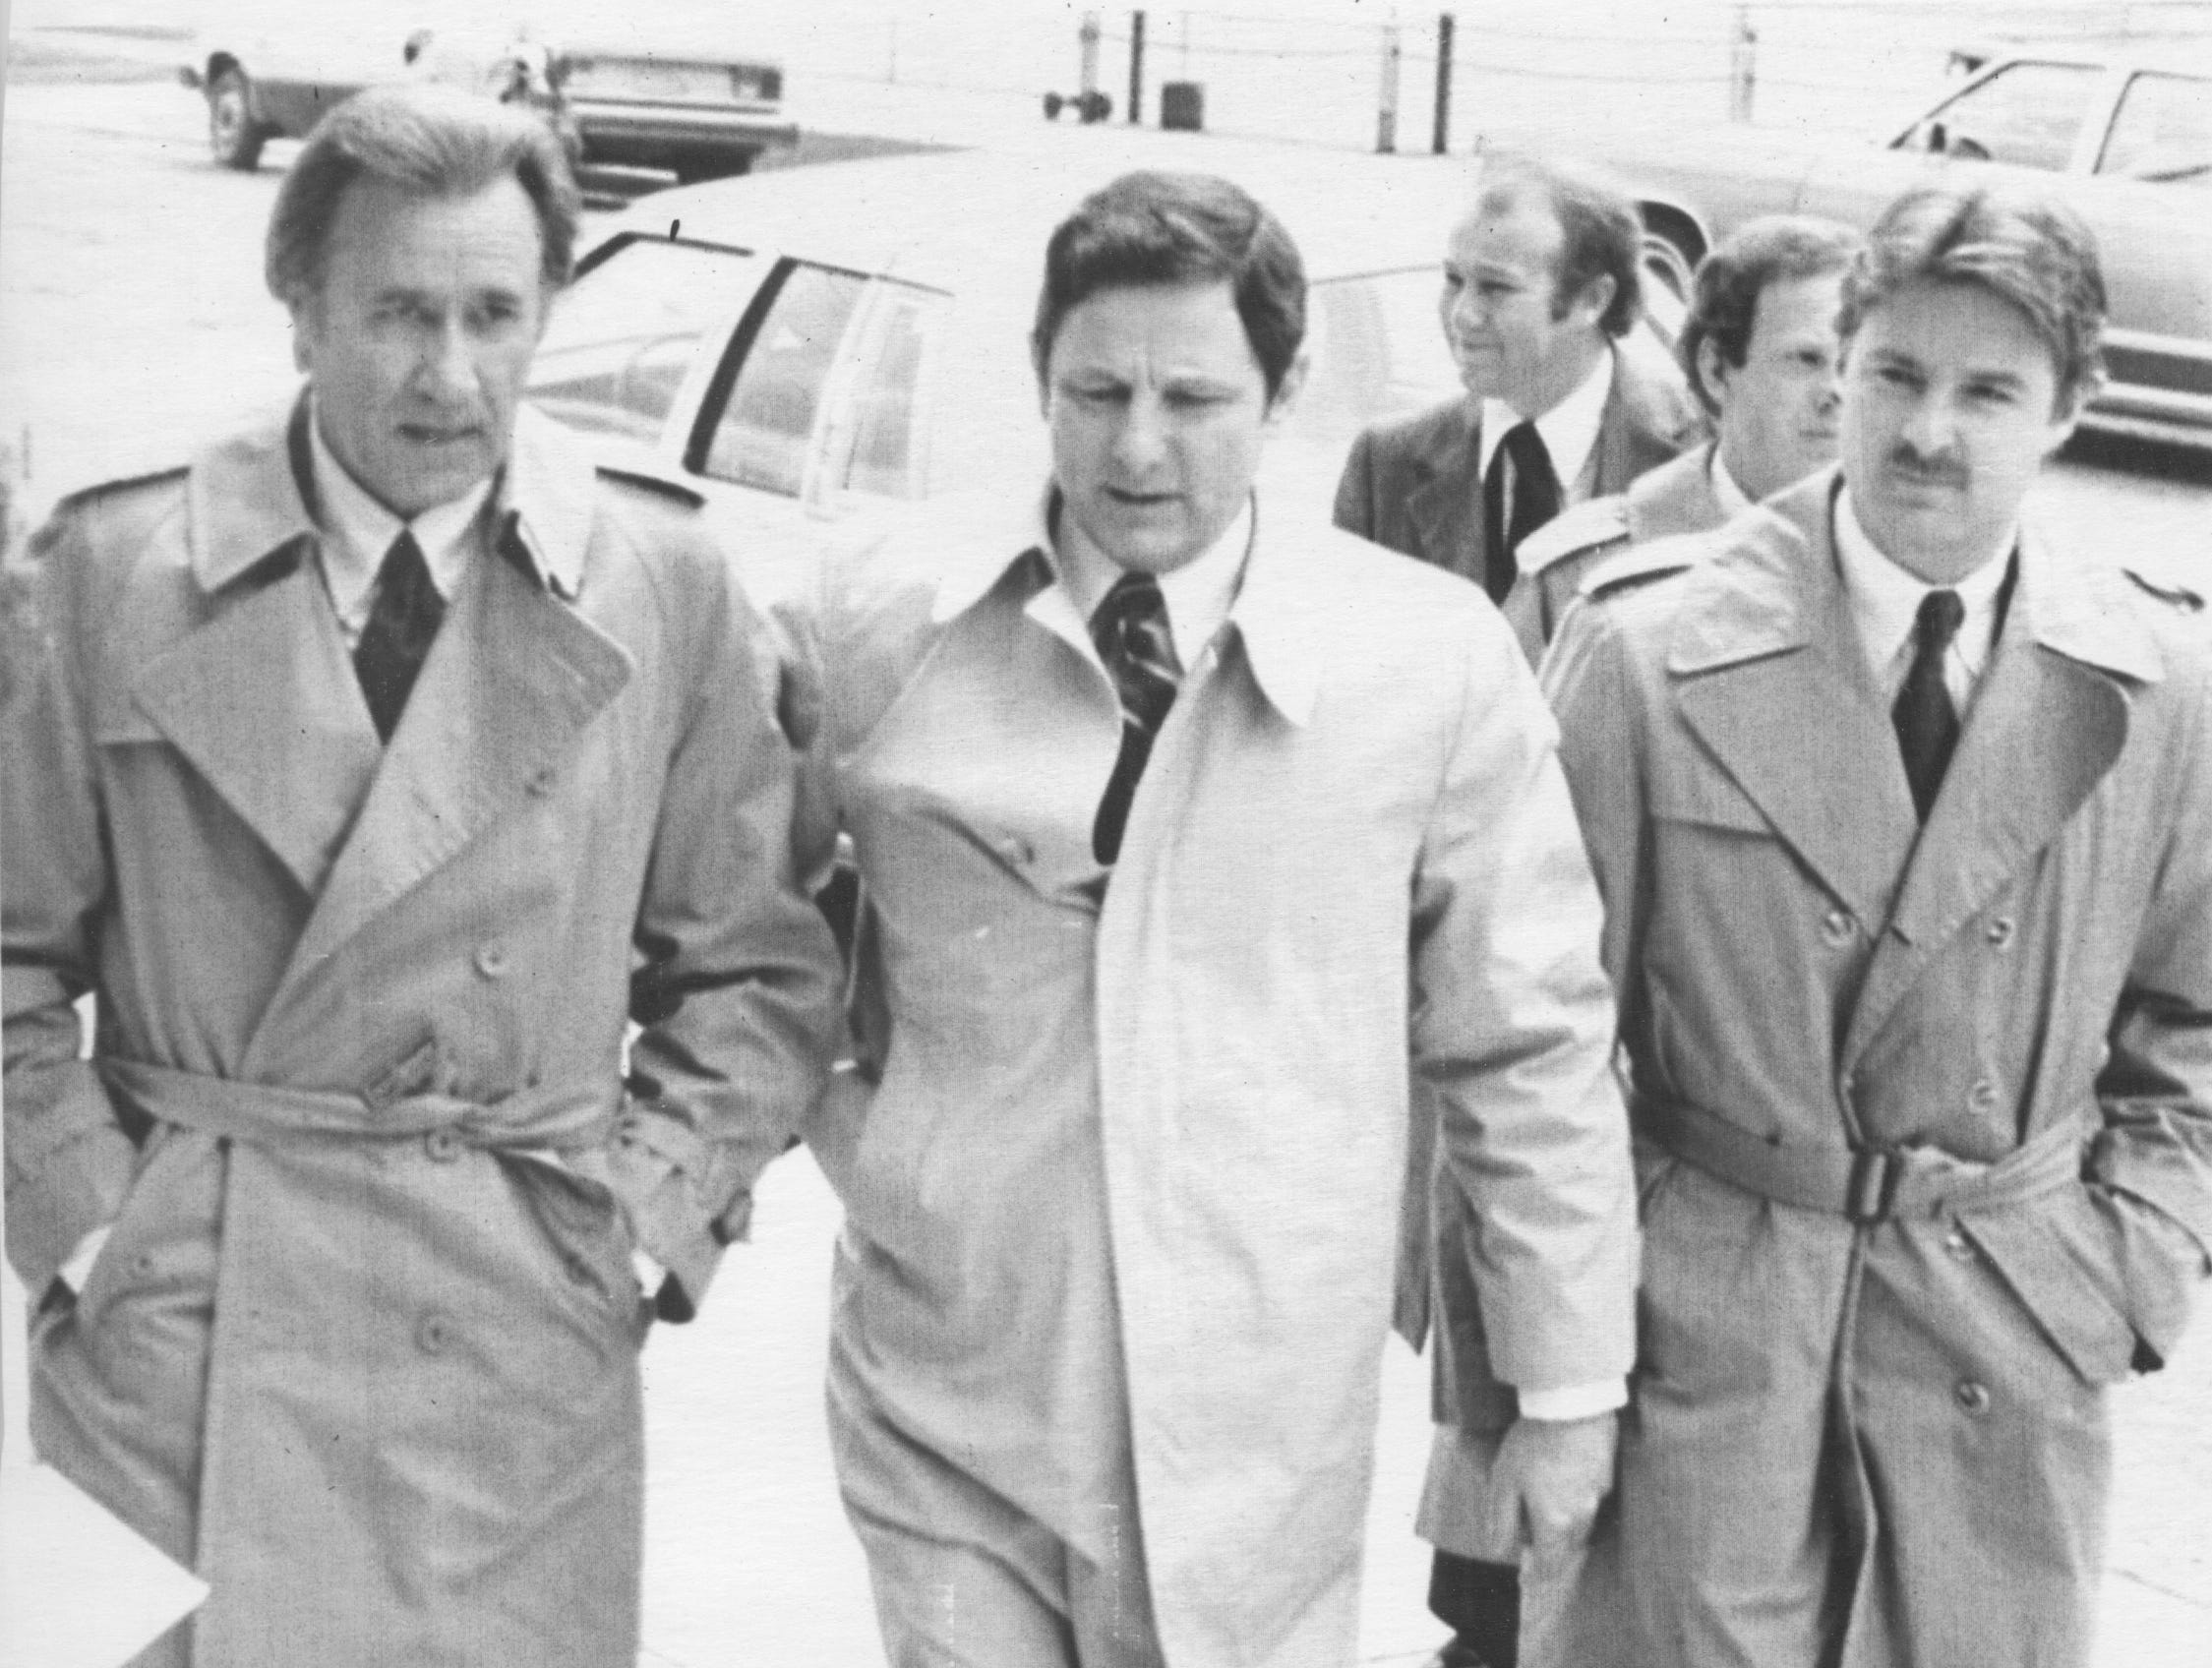 Terre Haute, IN: United States Senator Birch Bayh (center), (D-Ind.) flanked by the Rev. Oral Roberts (L) and Bayh's son, Evan, makes his way into a church 4/27 for memorial services for his wife, Marvella who died earlier this week of cancer. Mrs. Bayh, 46, died 4/24 in Bethseda, Md., after an 8-year bout with the disease. Rev. Roberts was one of several local, state and national figures attending and speaking at the services. (04/27/1979)